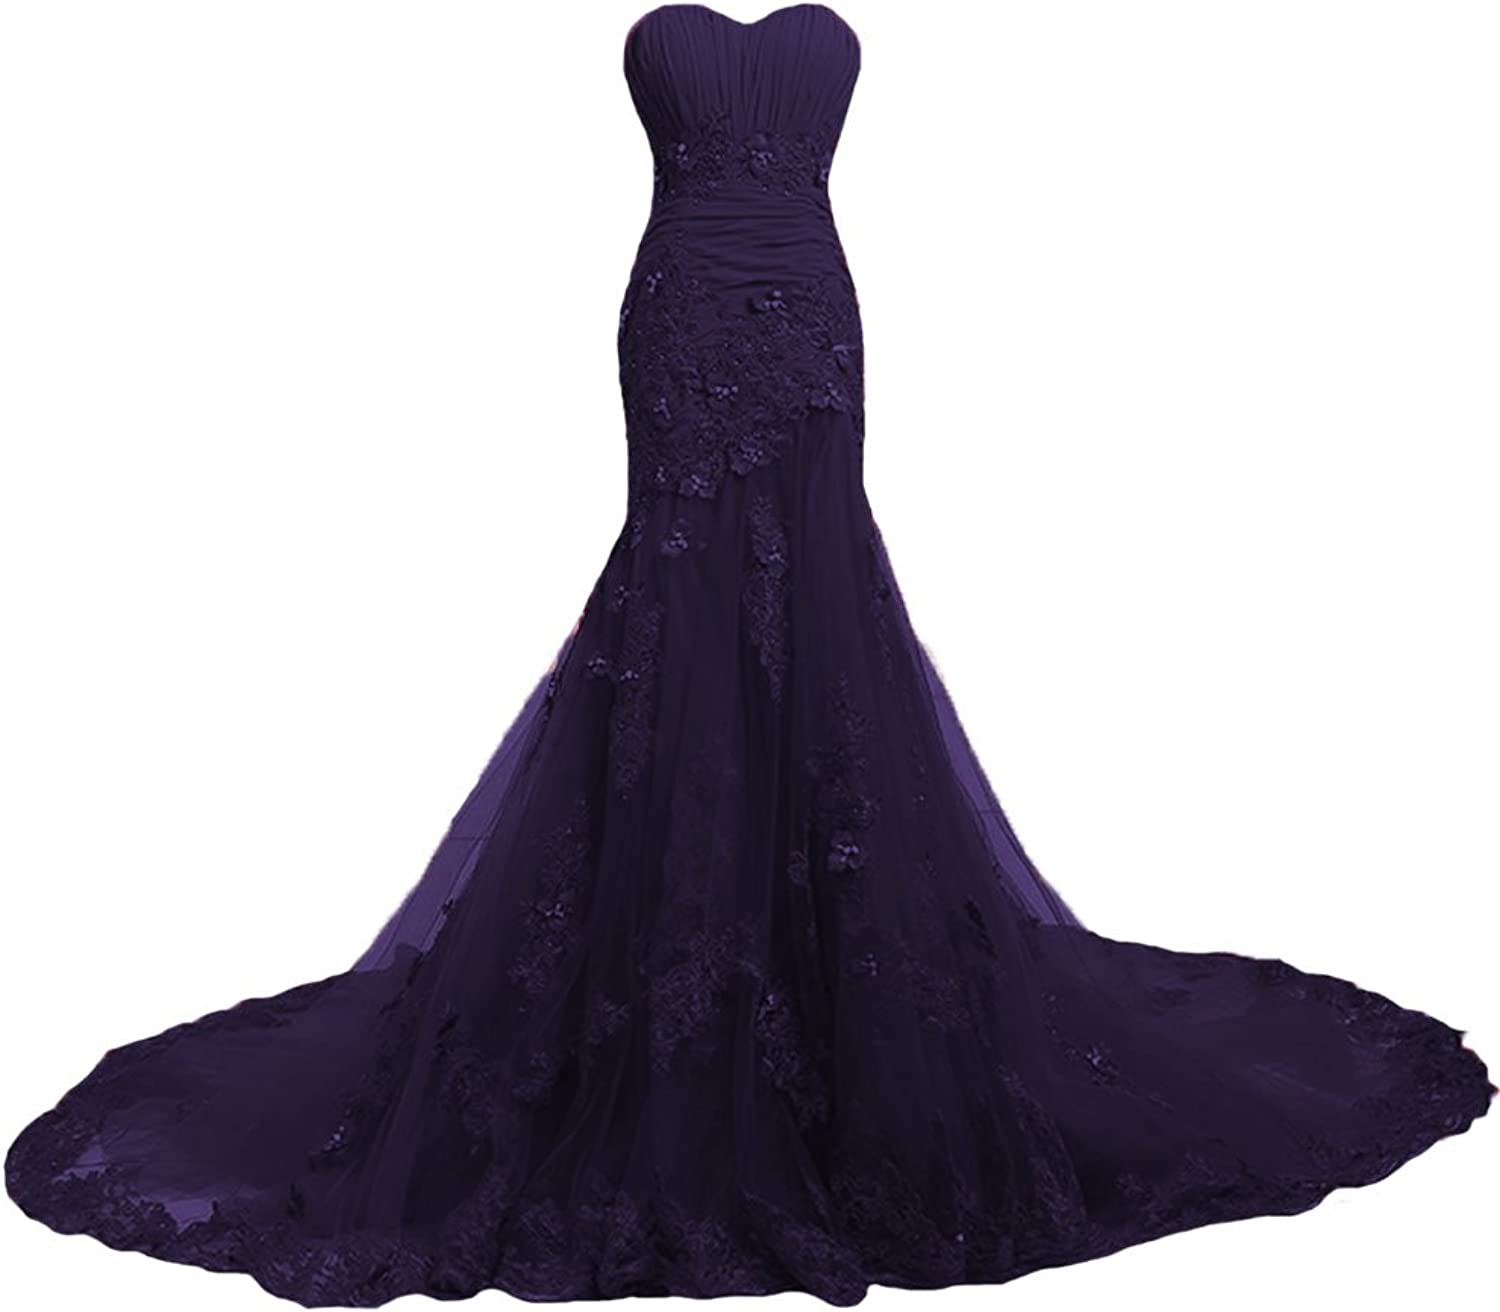 W.W Mermaid Lace Black Red Women Vintage Wedding Dresses colors Gothic Bridal Gowns